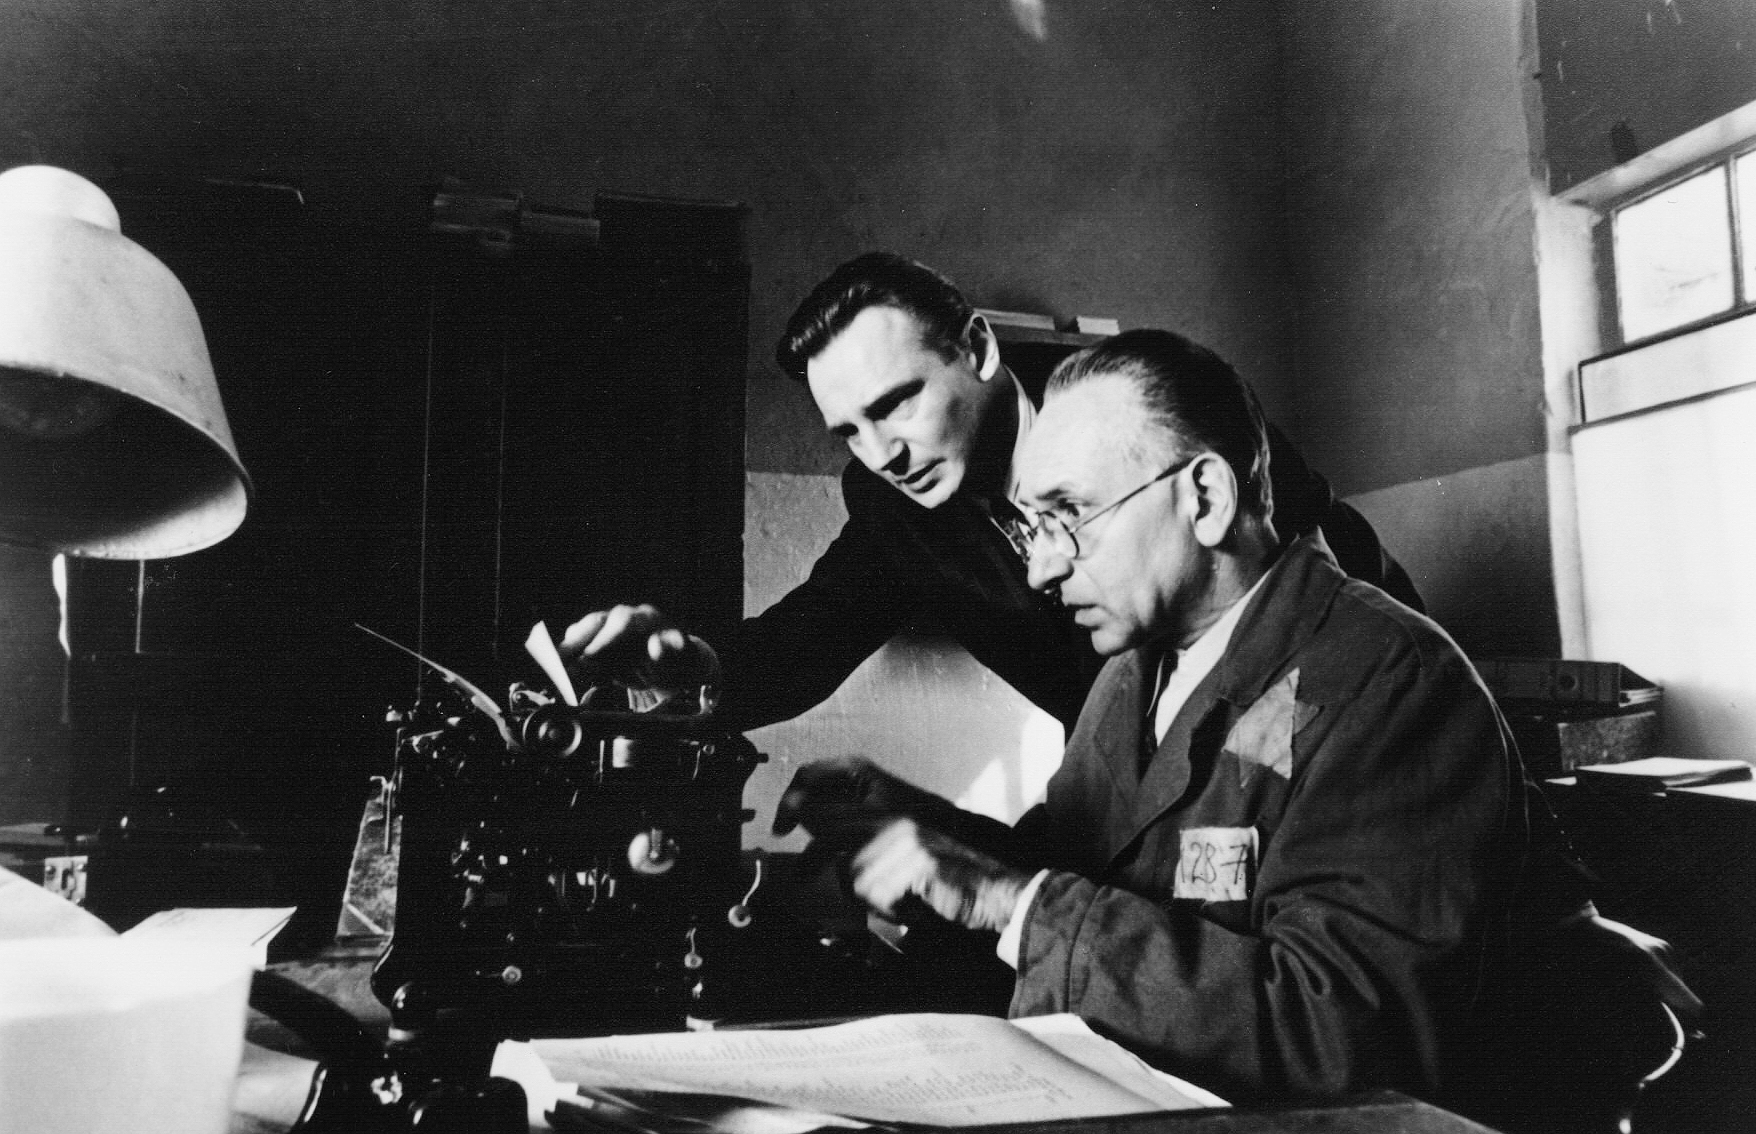 "<b>""Schindlers List""</b> <br>Steven Spielberg's film about German industrialist Oscar Schindler, who saved 1,200 Jews from death in extermination camps during the Nazi era, triggered a new wave of dialogue about the Holocaust in 1994. The merciless portrayal of the violence and brutality of the concentration camps left many cinema goers shocked and in tears.  For Spielberg, the film was a way to process his own family history, as many of his relatives died in German concentration camps, and he kept none of the proceeds from the film. Shot in original locations, the film was nominated for twelve Oscars and won seven. The real Oscar Schindler died virtually destitute in 1974, supported by the Jews he saved until his death. Schindler was awarded the German Federal Cross of Merit 1st class in 1965, and Spielberg received an even higher honor, the Great Cross of Merit with Star, for his film adaptation."